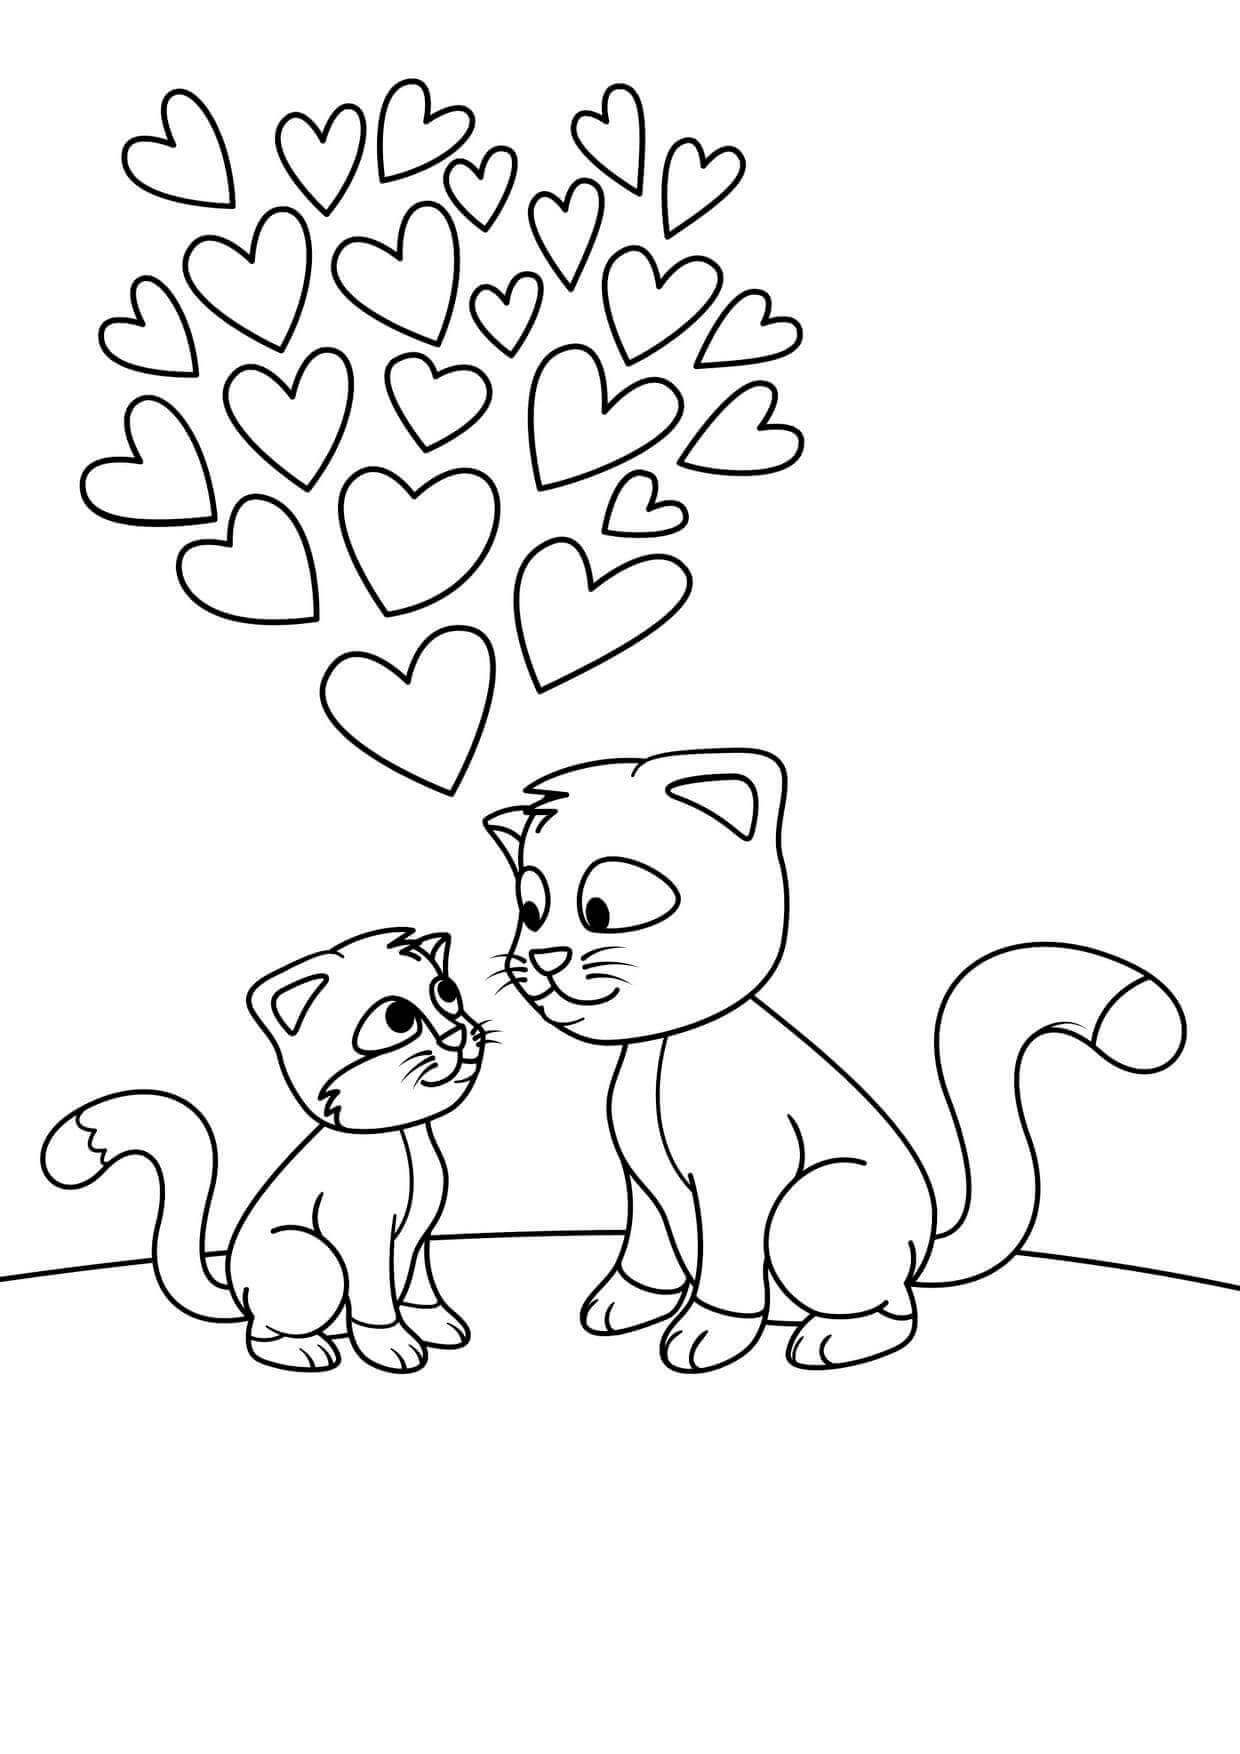 printable colouring pages for girls free printable cute coloring pages for girls quotes that pages girls colouring printable for